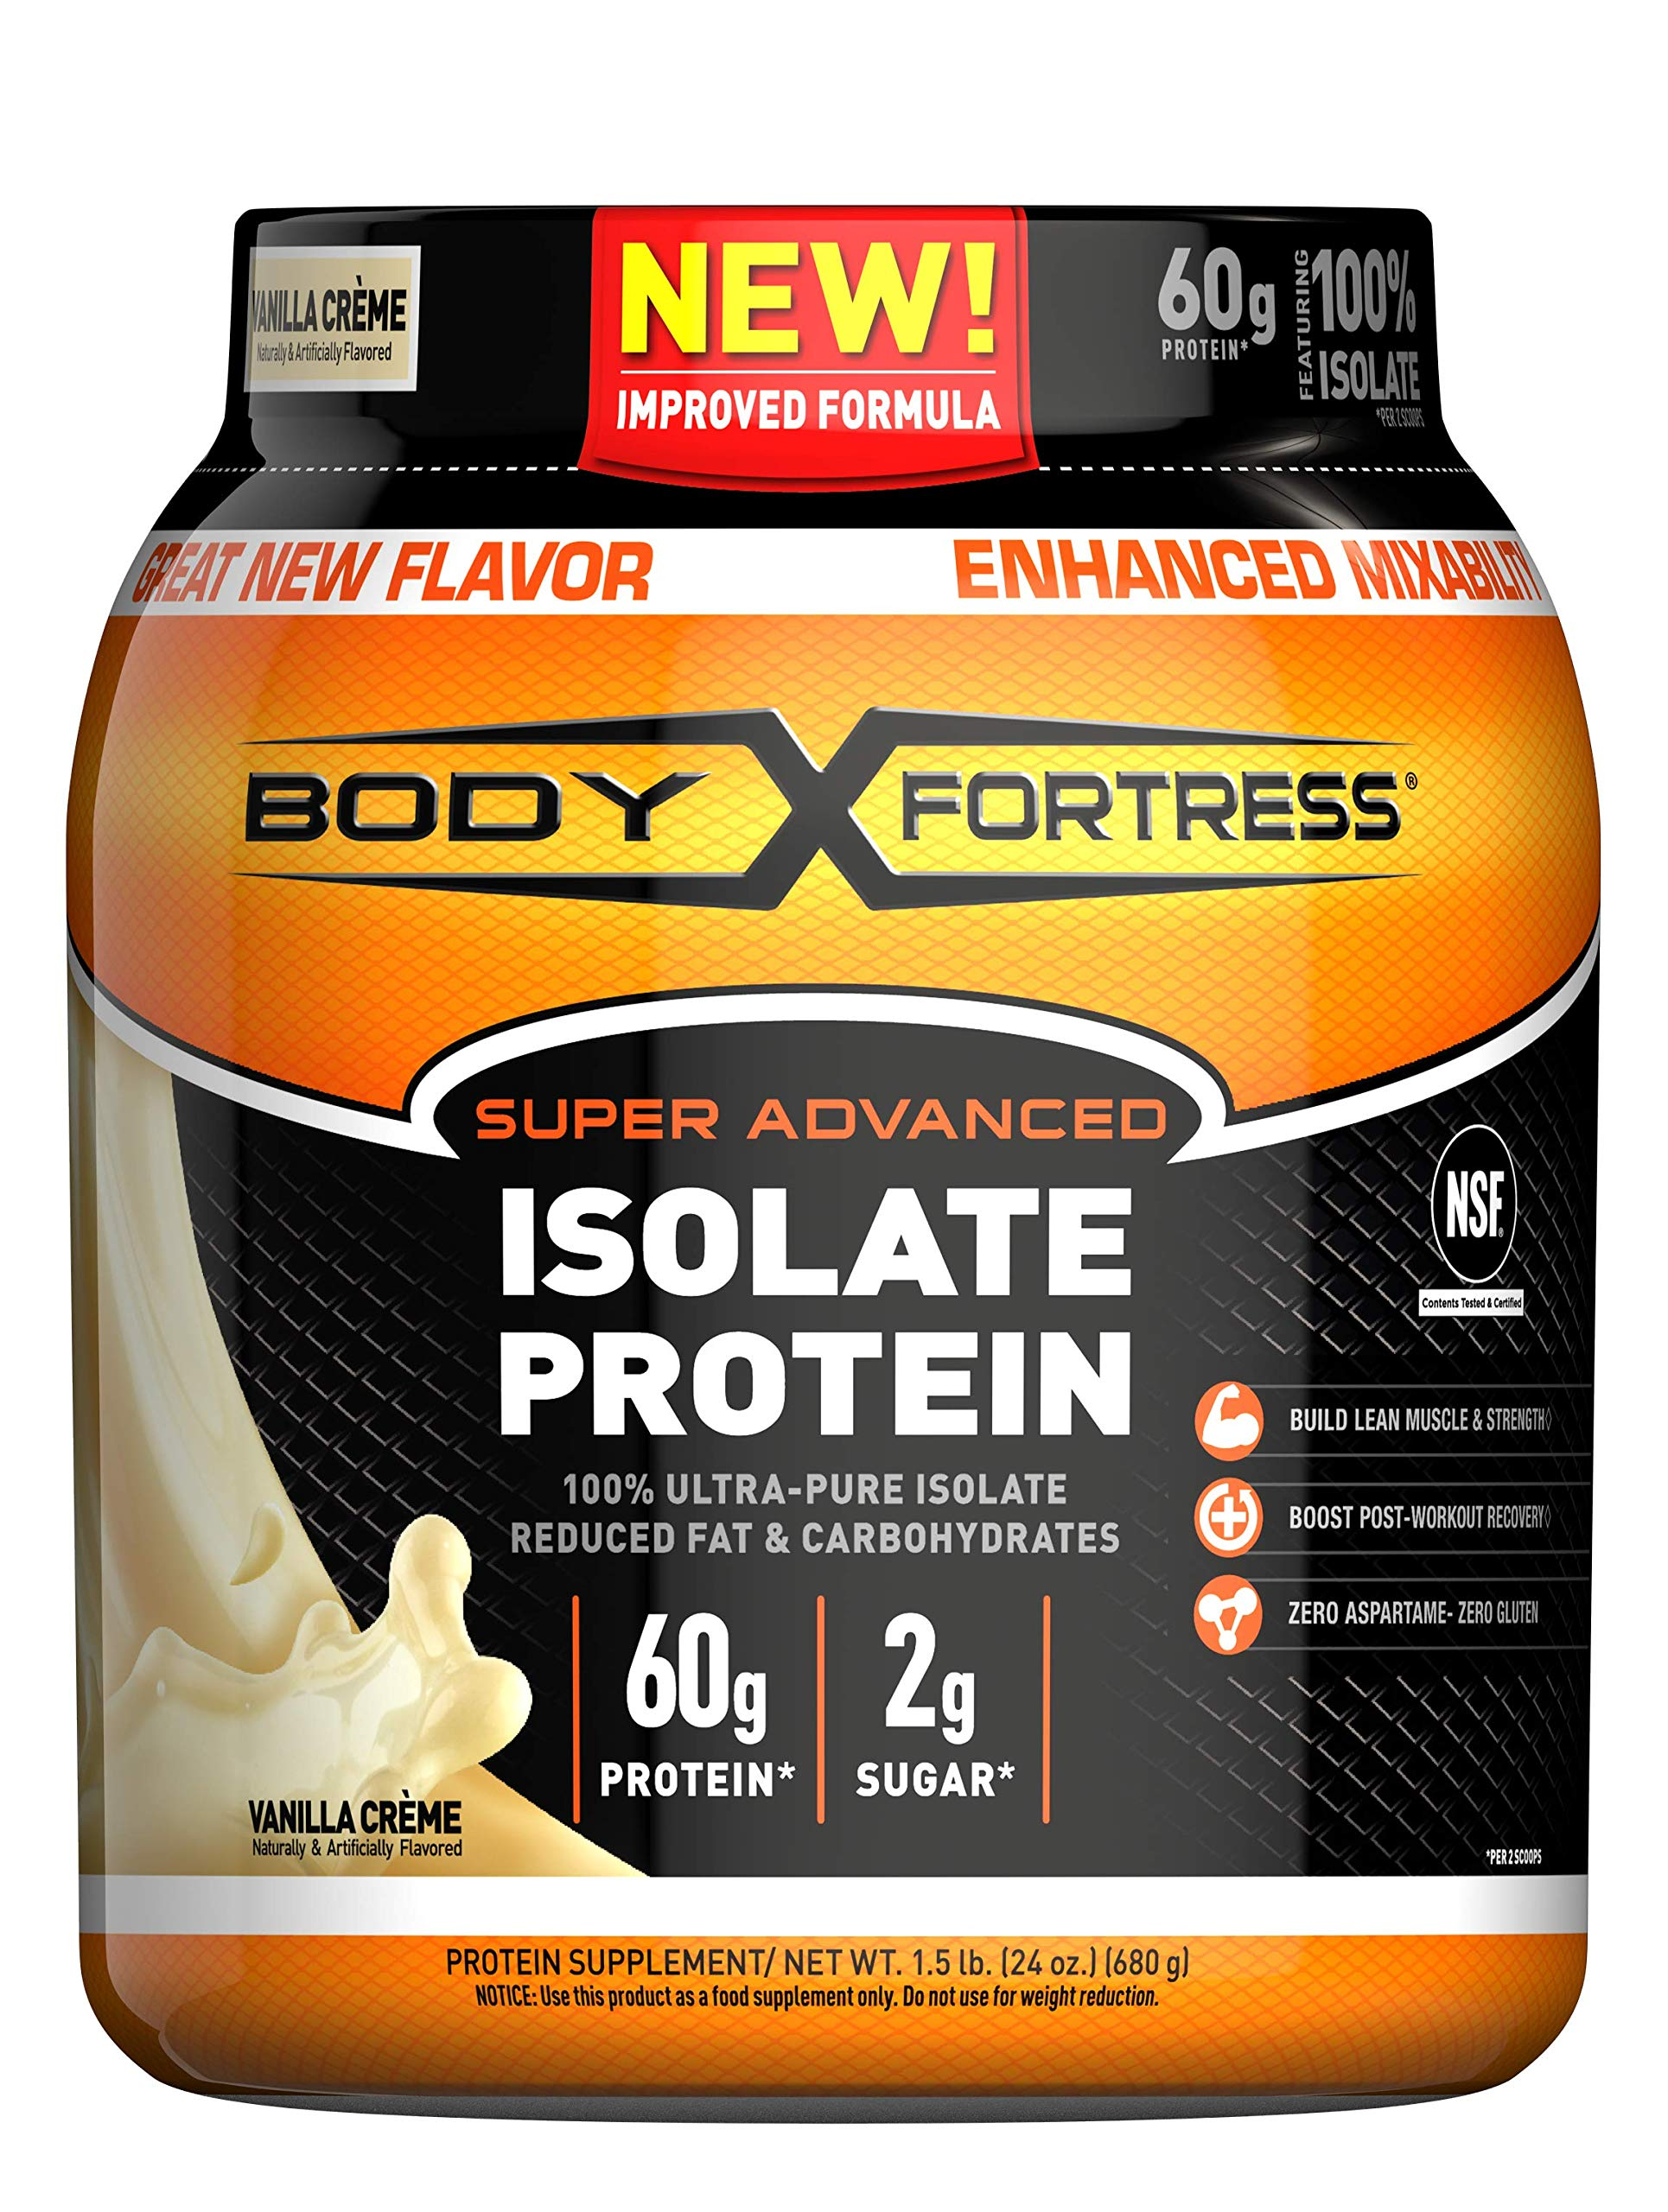 Body Fortress Super Advanced Whey Protein Isolate Powder, Gluten Free, Vanilla, 1.5 lbs by Body Fortress